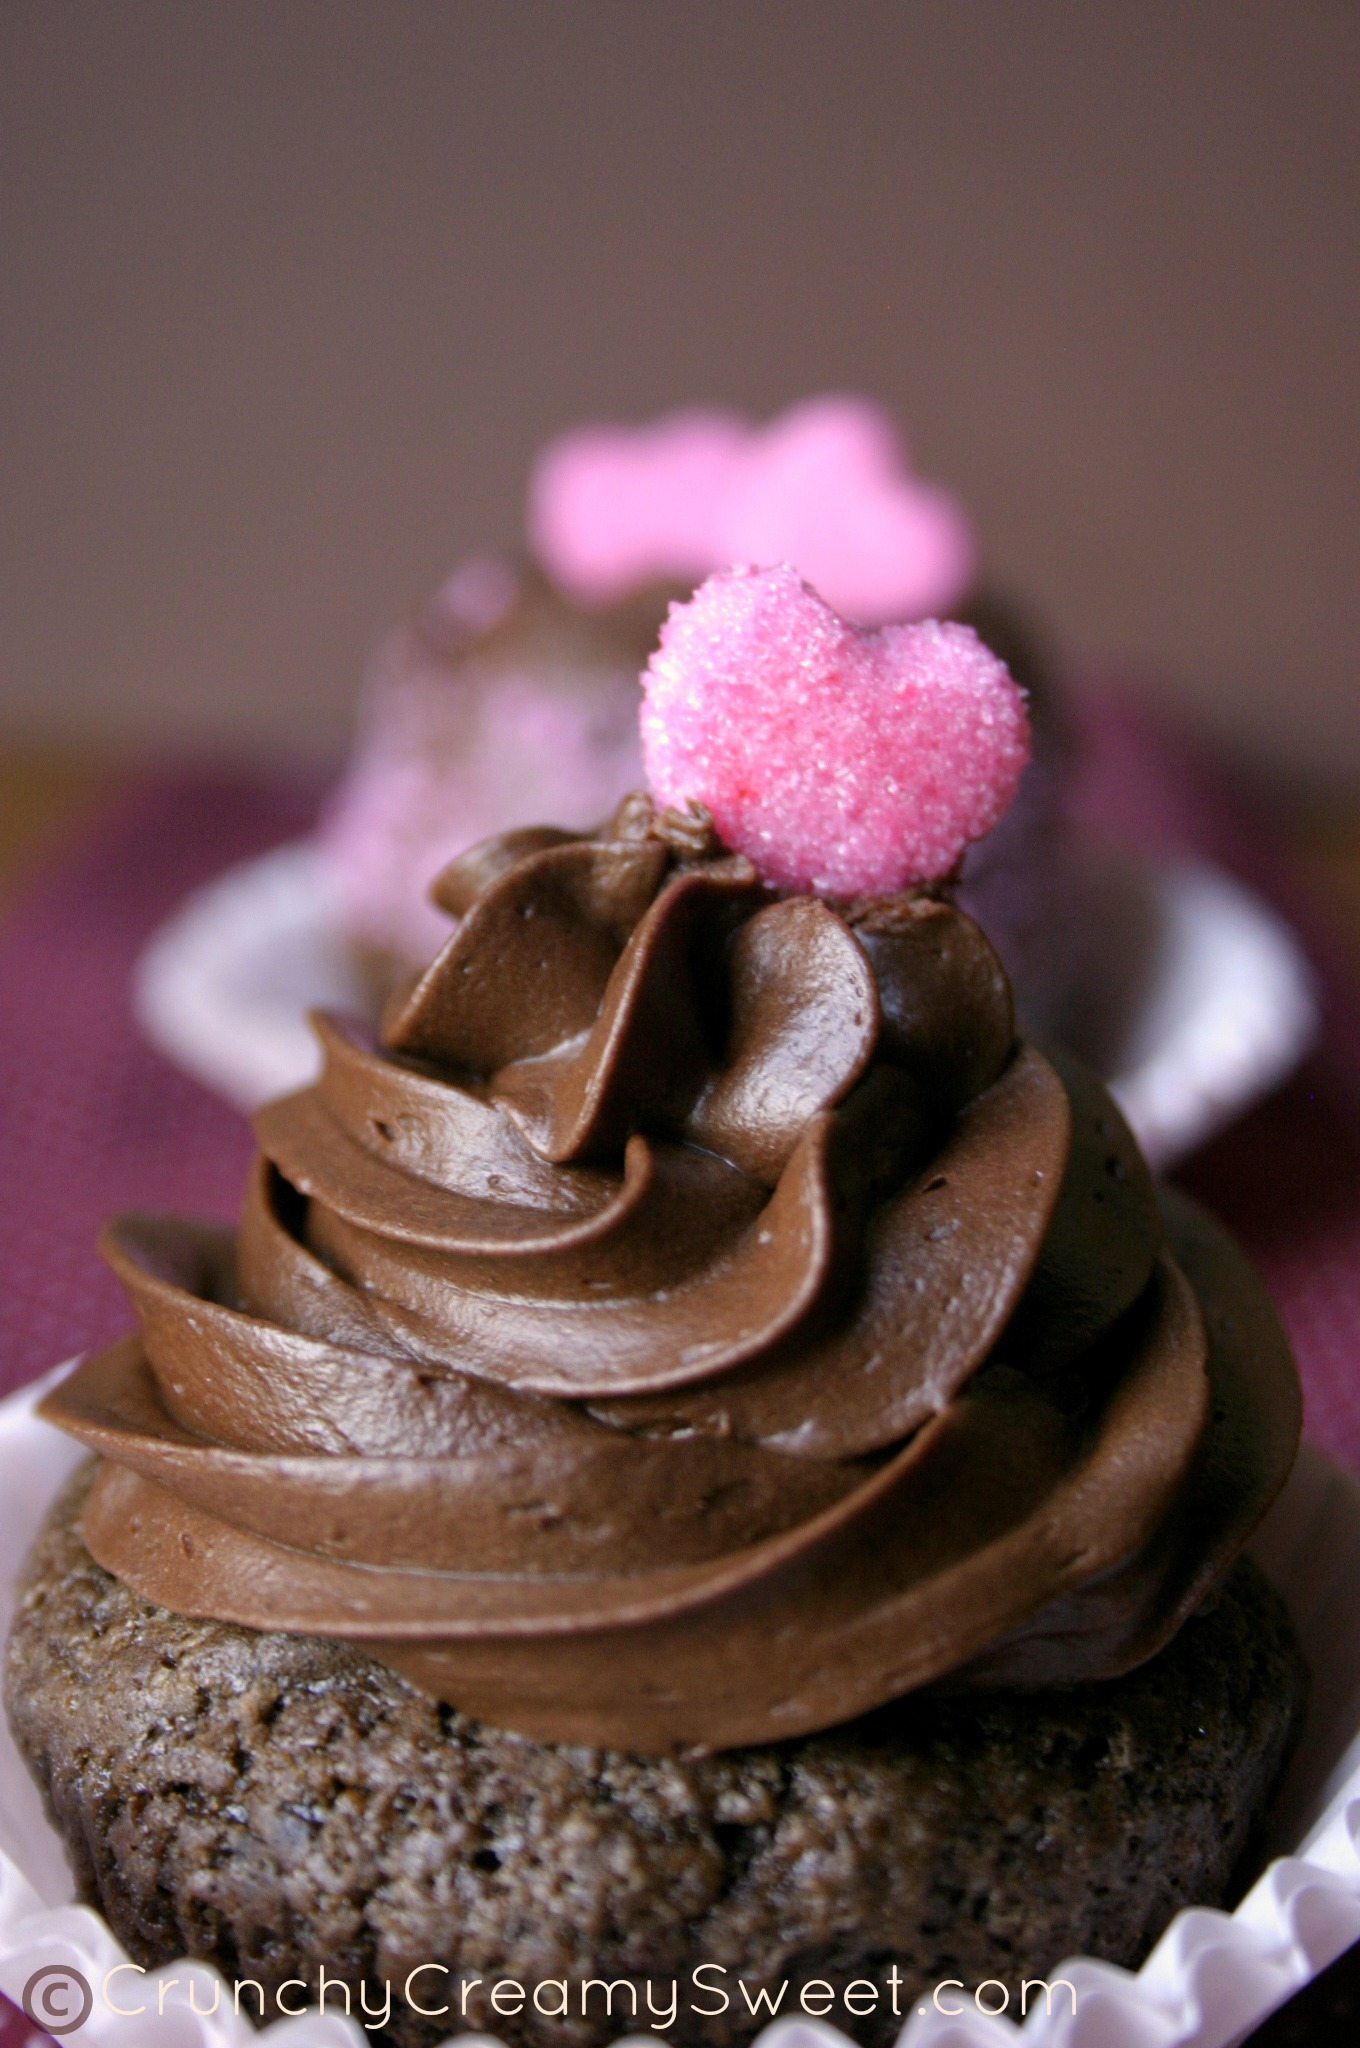 Cupcakes with Chocolate Ganache Whipped Frosting